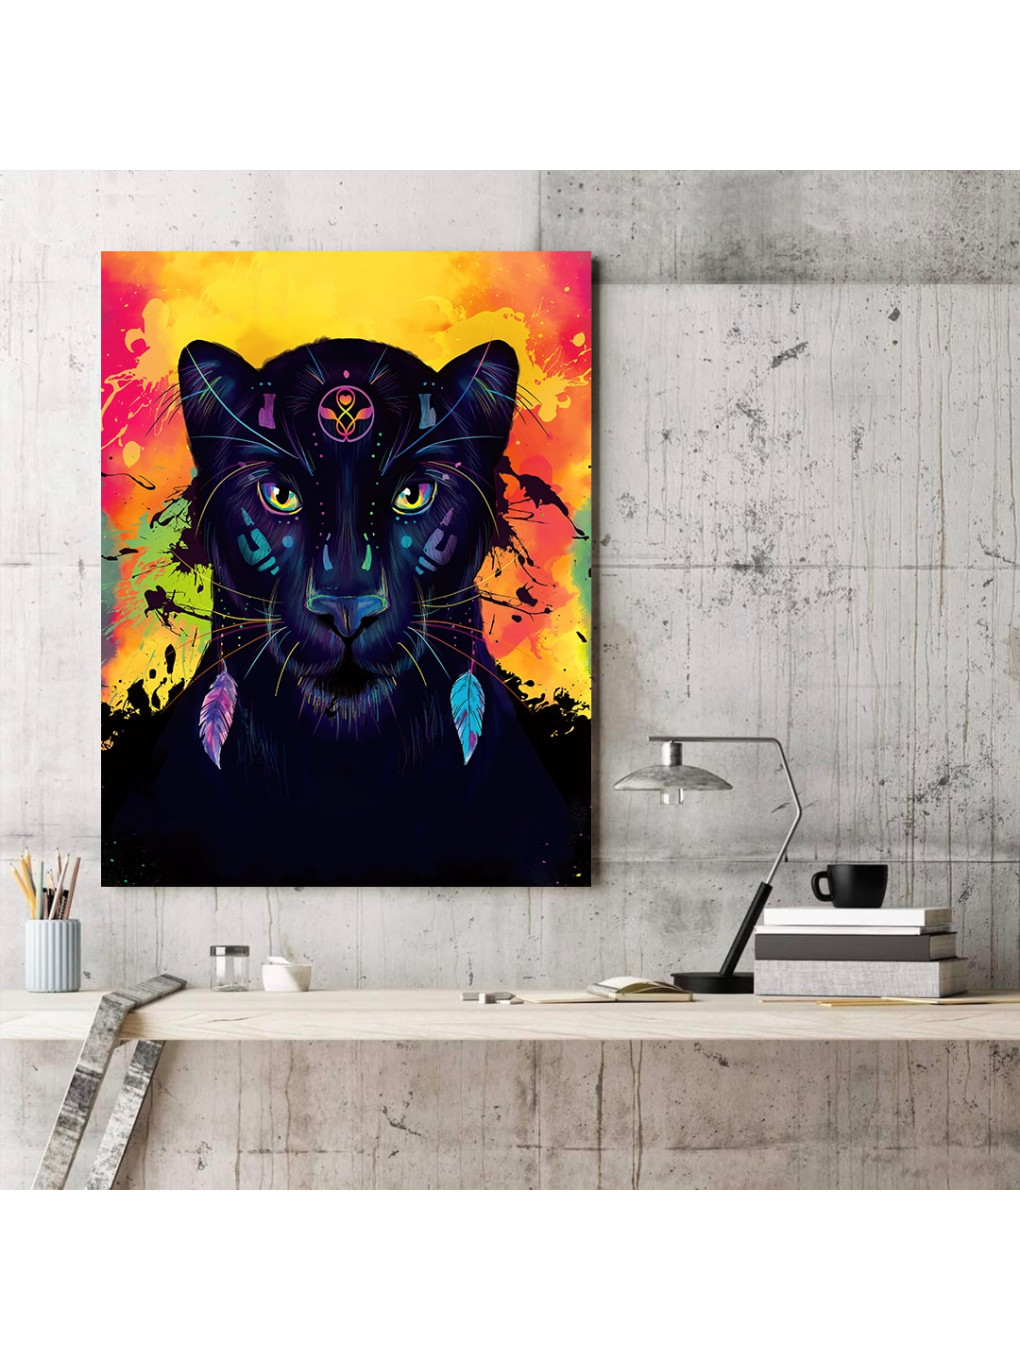 Black Panther_BLK128_5